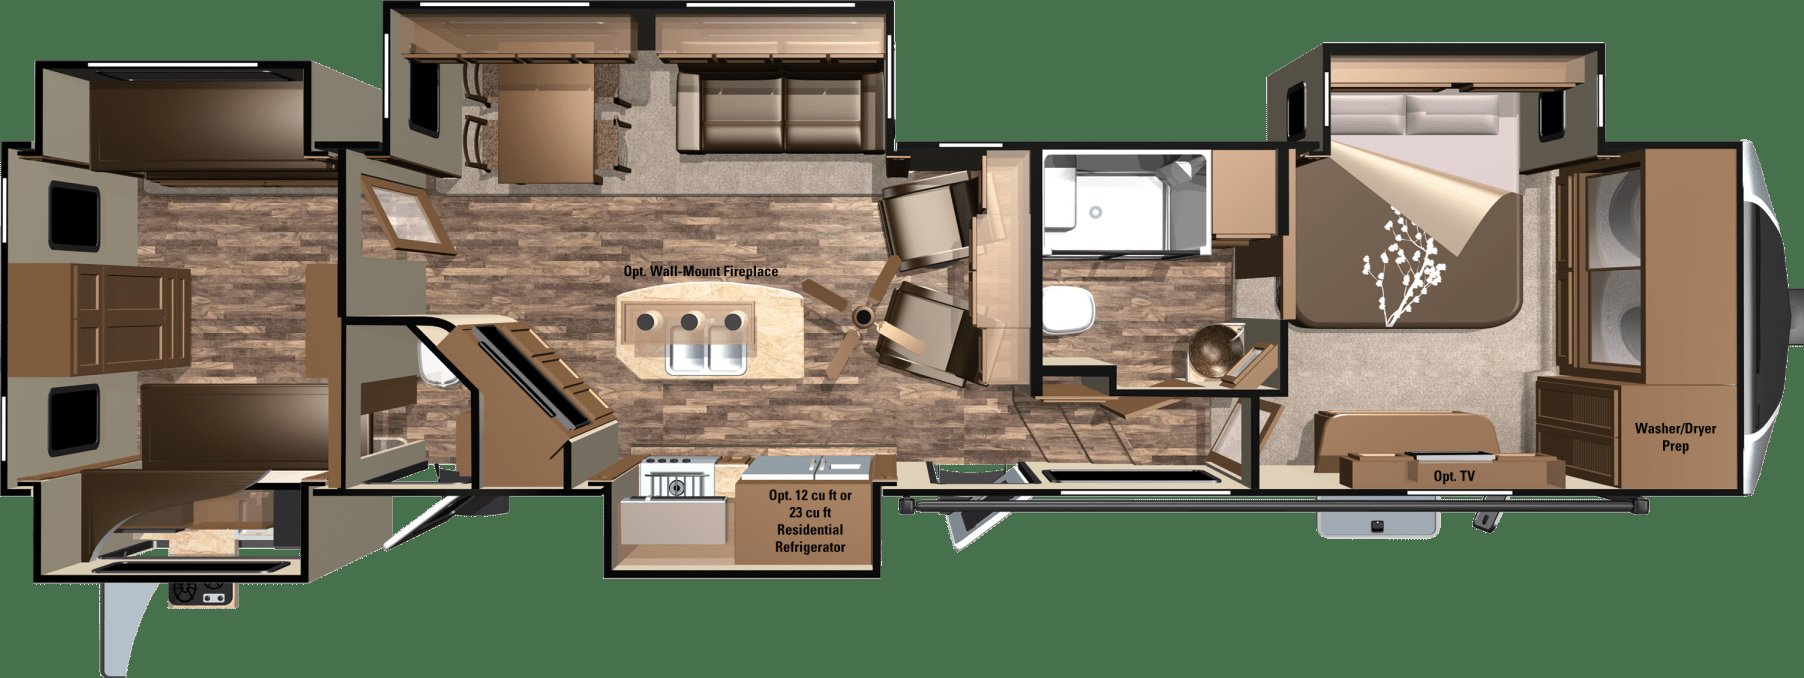 Best 3 Bedroom Rv 5Th Wheel 28 Images 3 Bedroom 5Th Wheel With Pictures